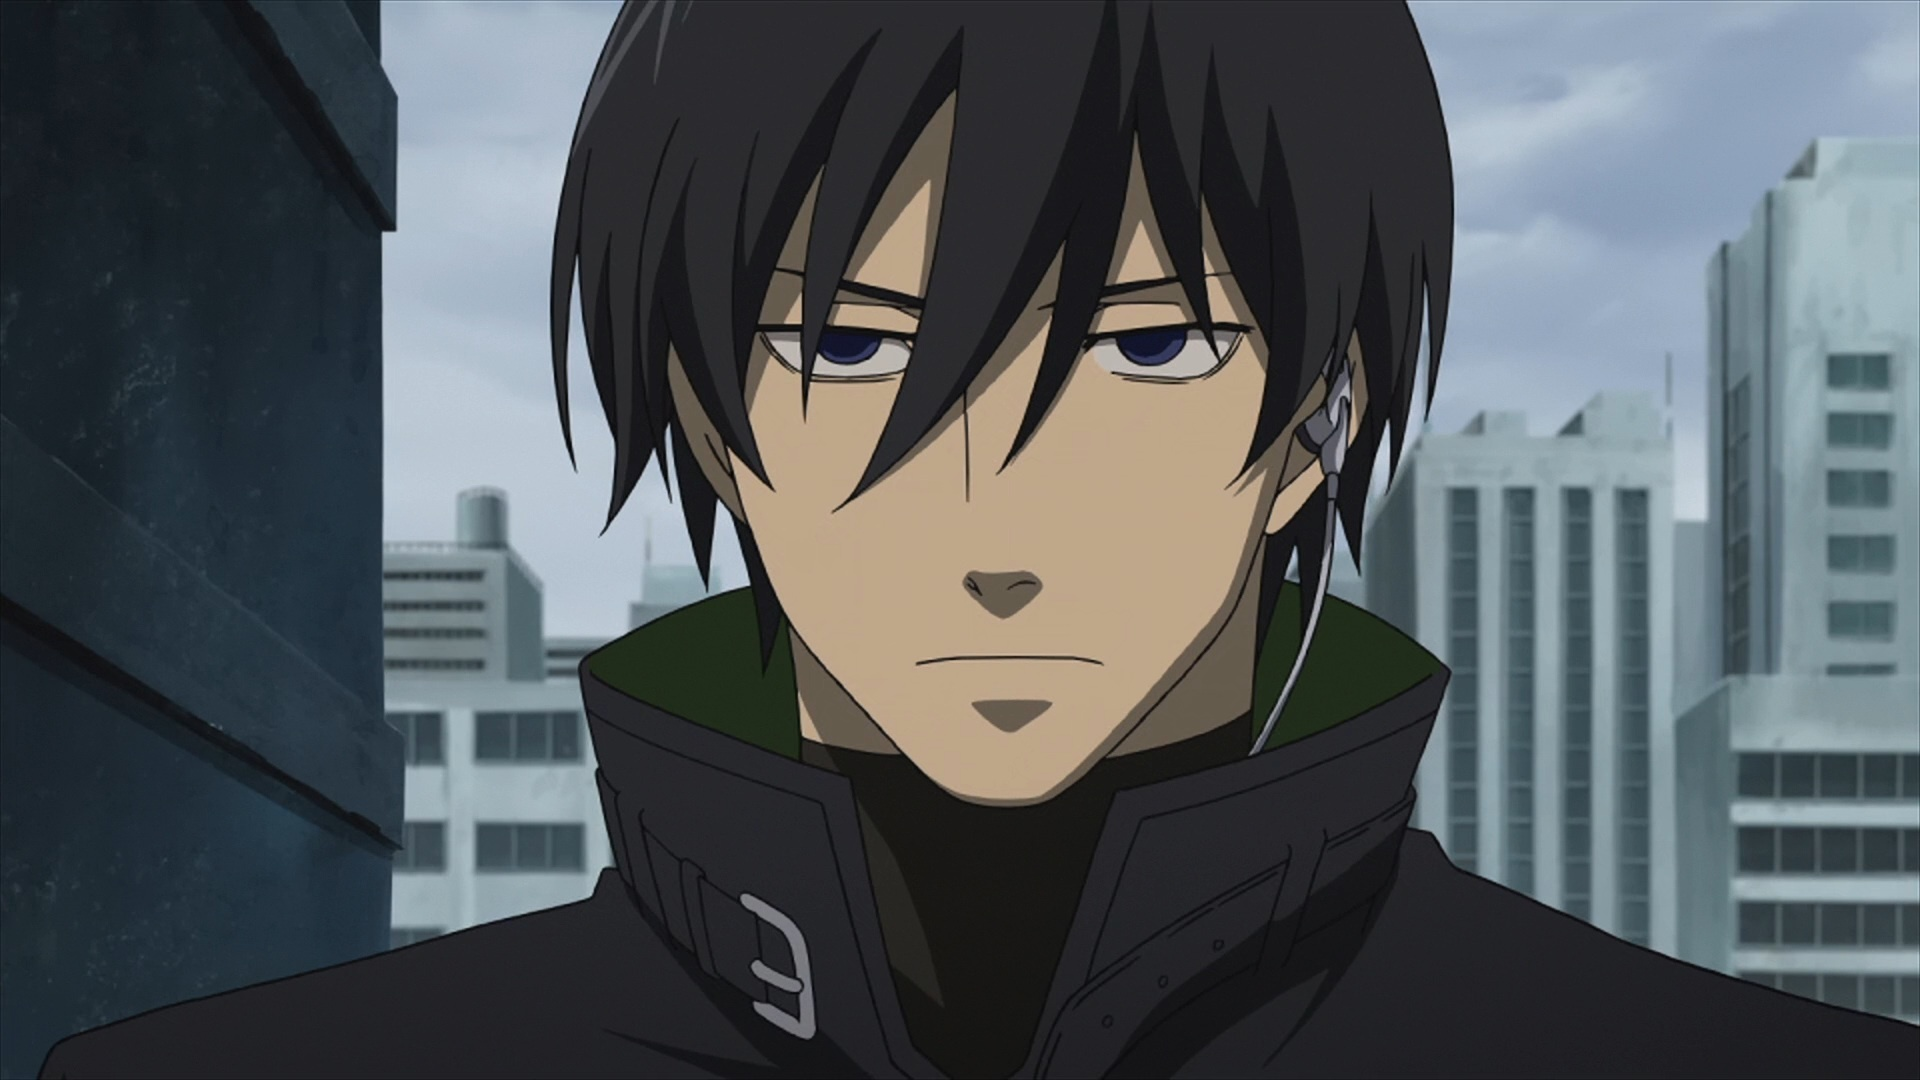 Anime Of My Top Five Most Handsome Male Manga Characters Who Do You Think Is Mostly So